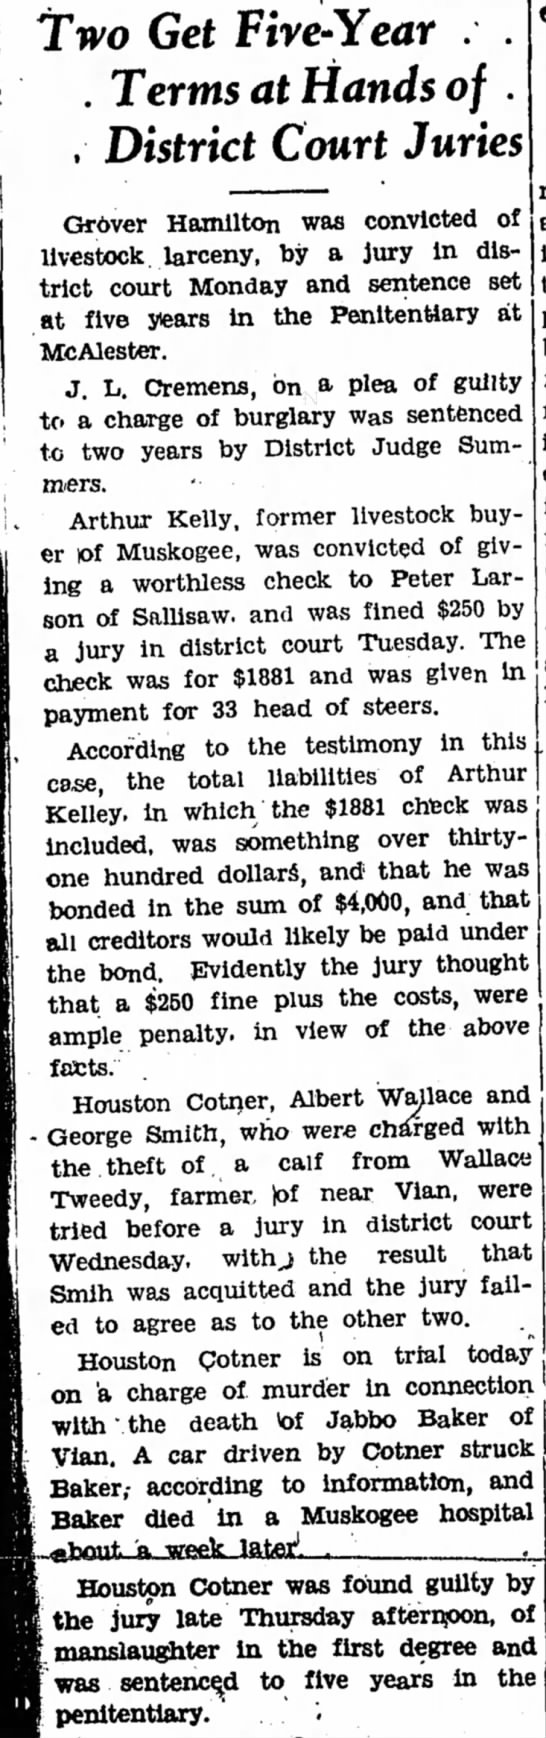 Houston Cotner stealing calf and murder.